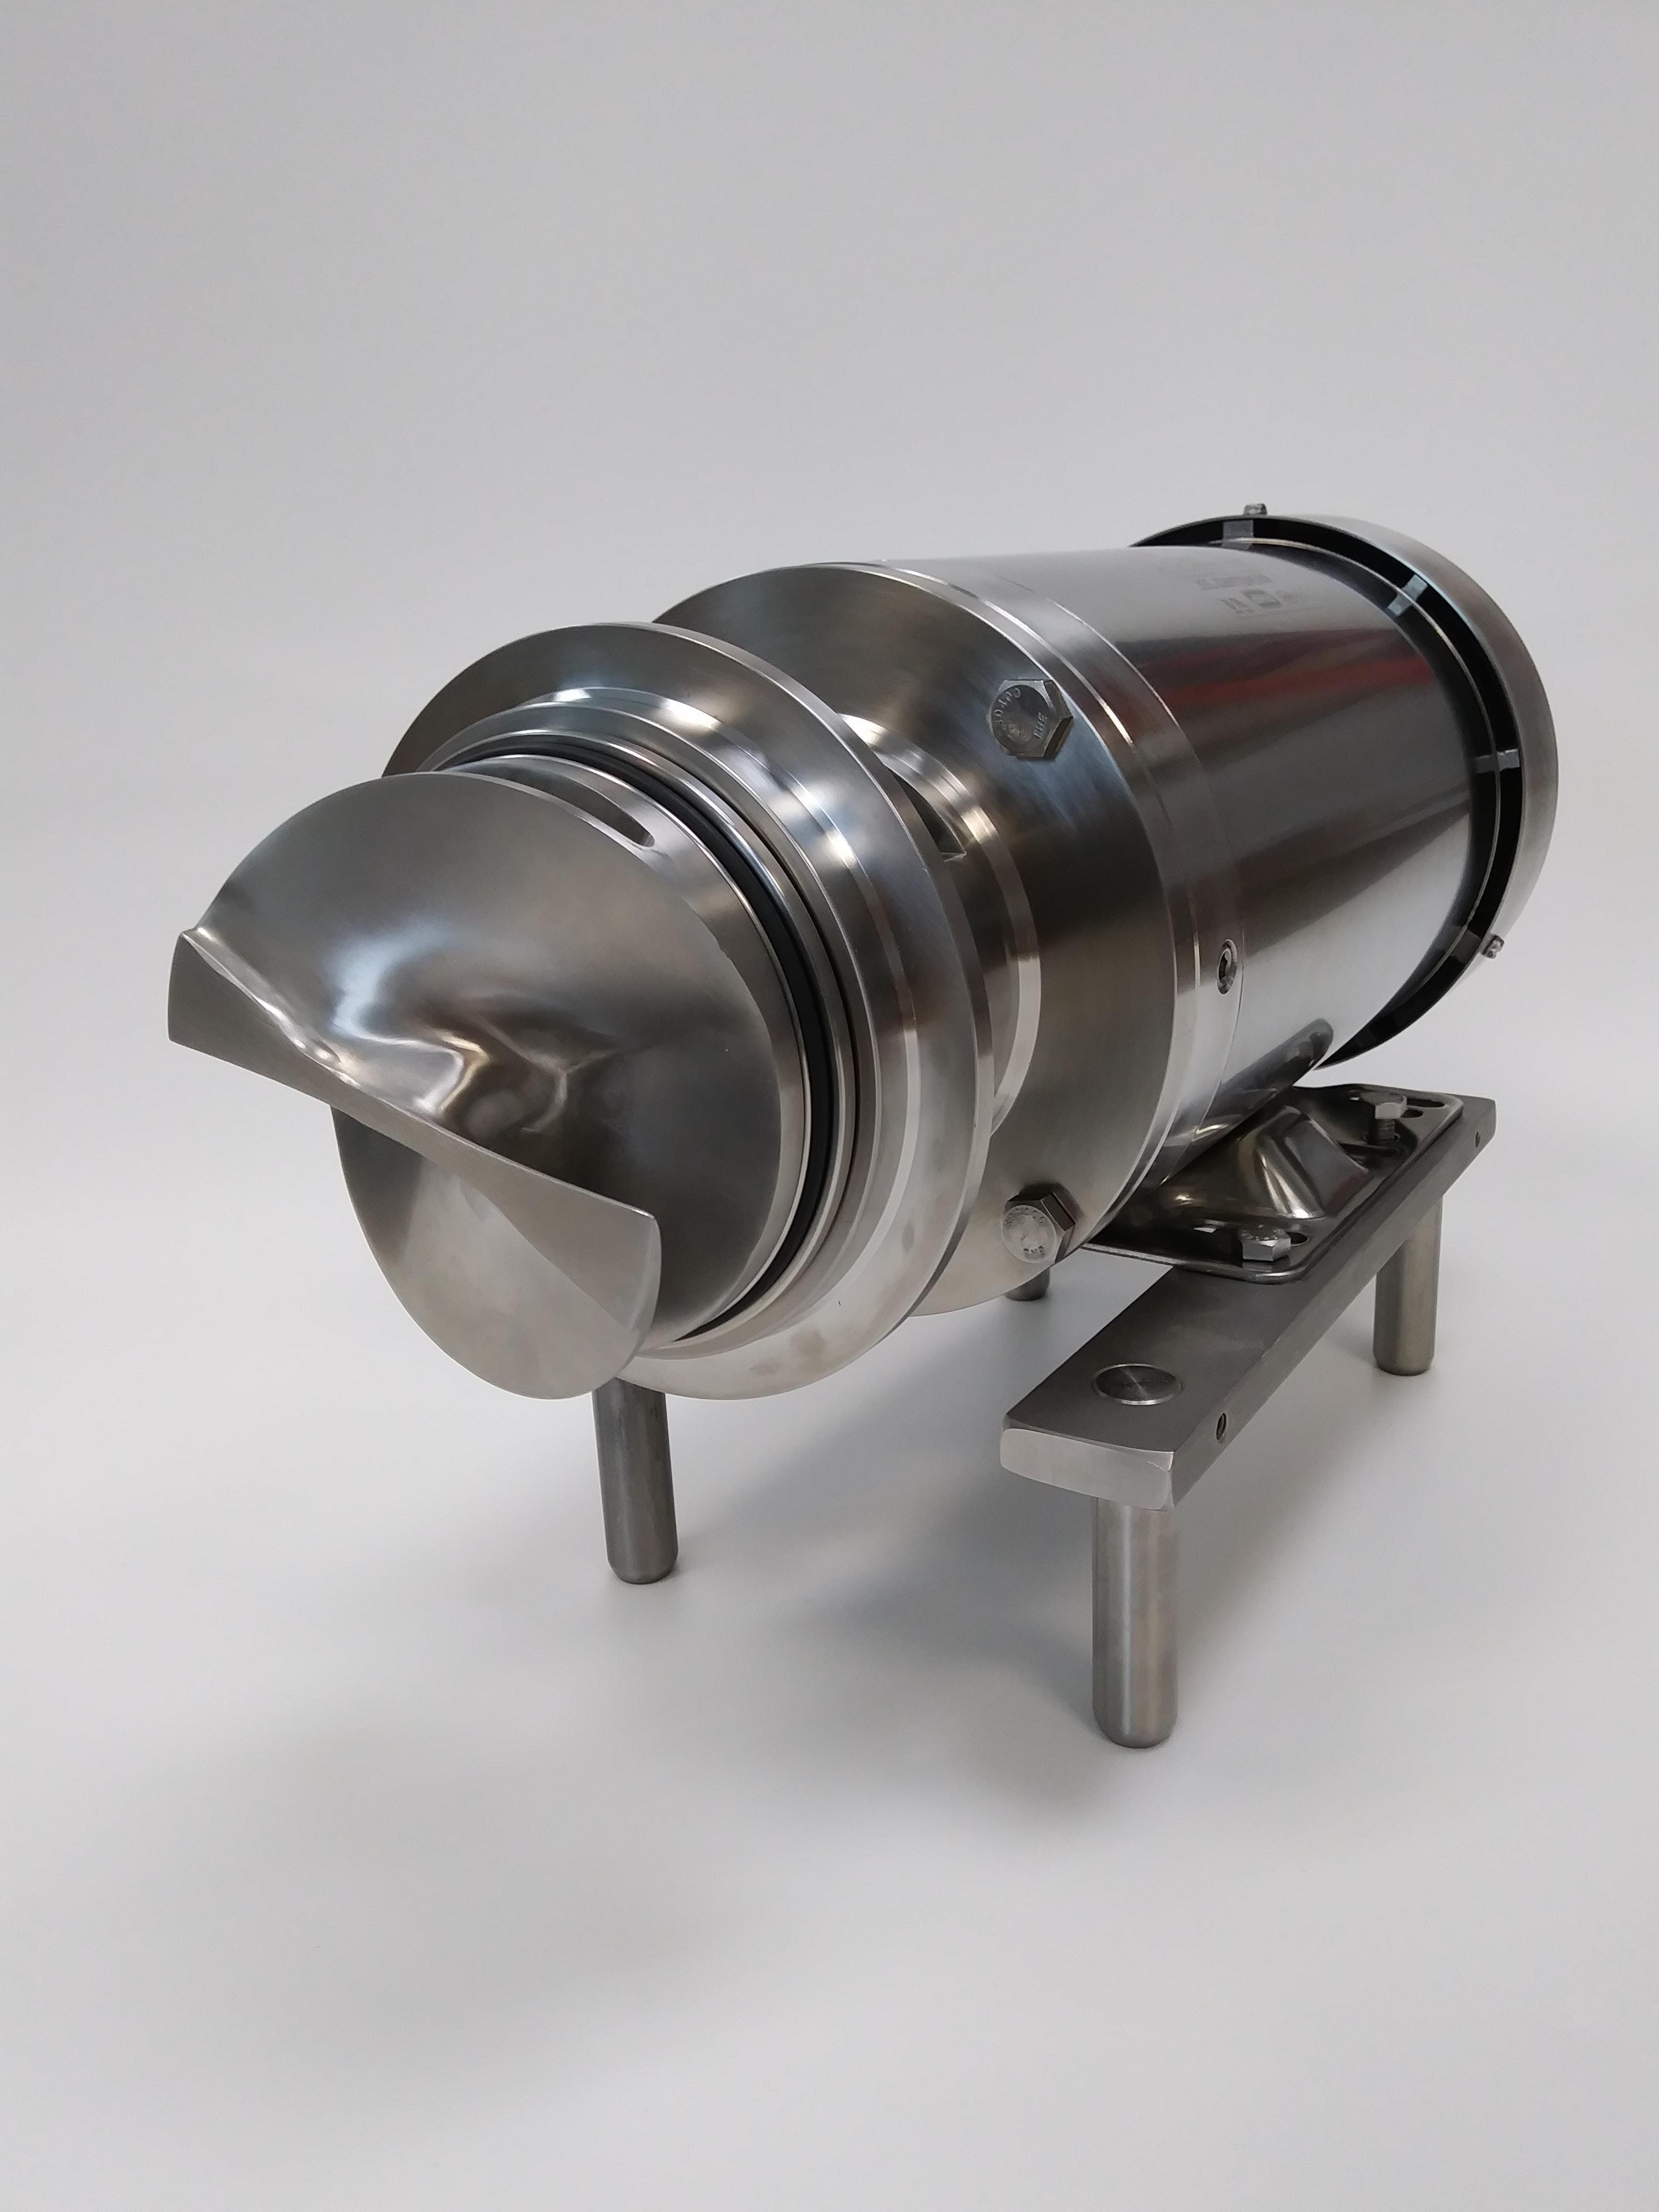 BOWPELLER®: our new, patented, low shear, centrifugal pump - sold by McFinn Technologies, LLC